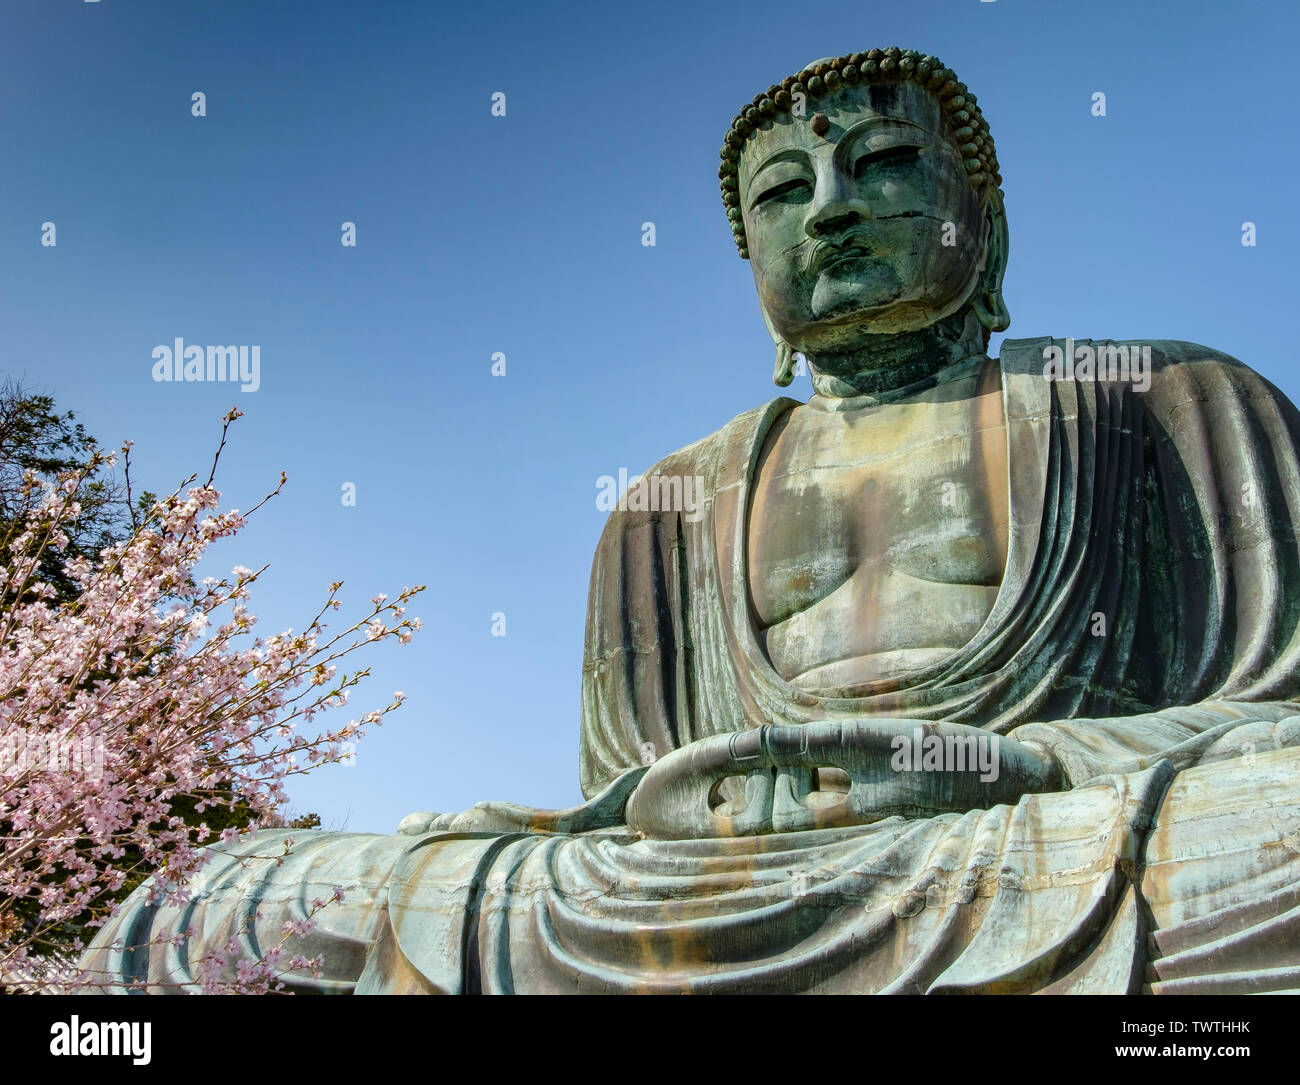 Full body of The Great Buddha of Kamakura and Cherry Blossom Tree on the side. The sculpture is one of the top things to do in Japan - Stock Image